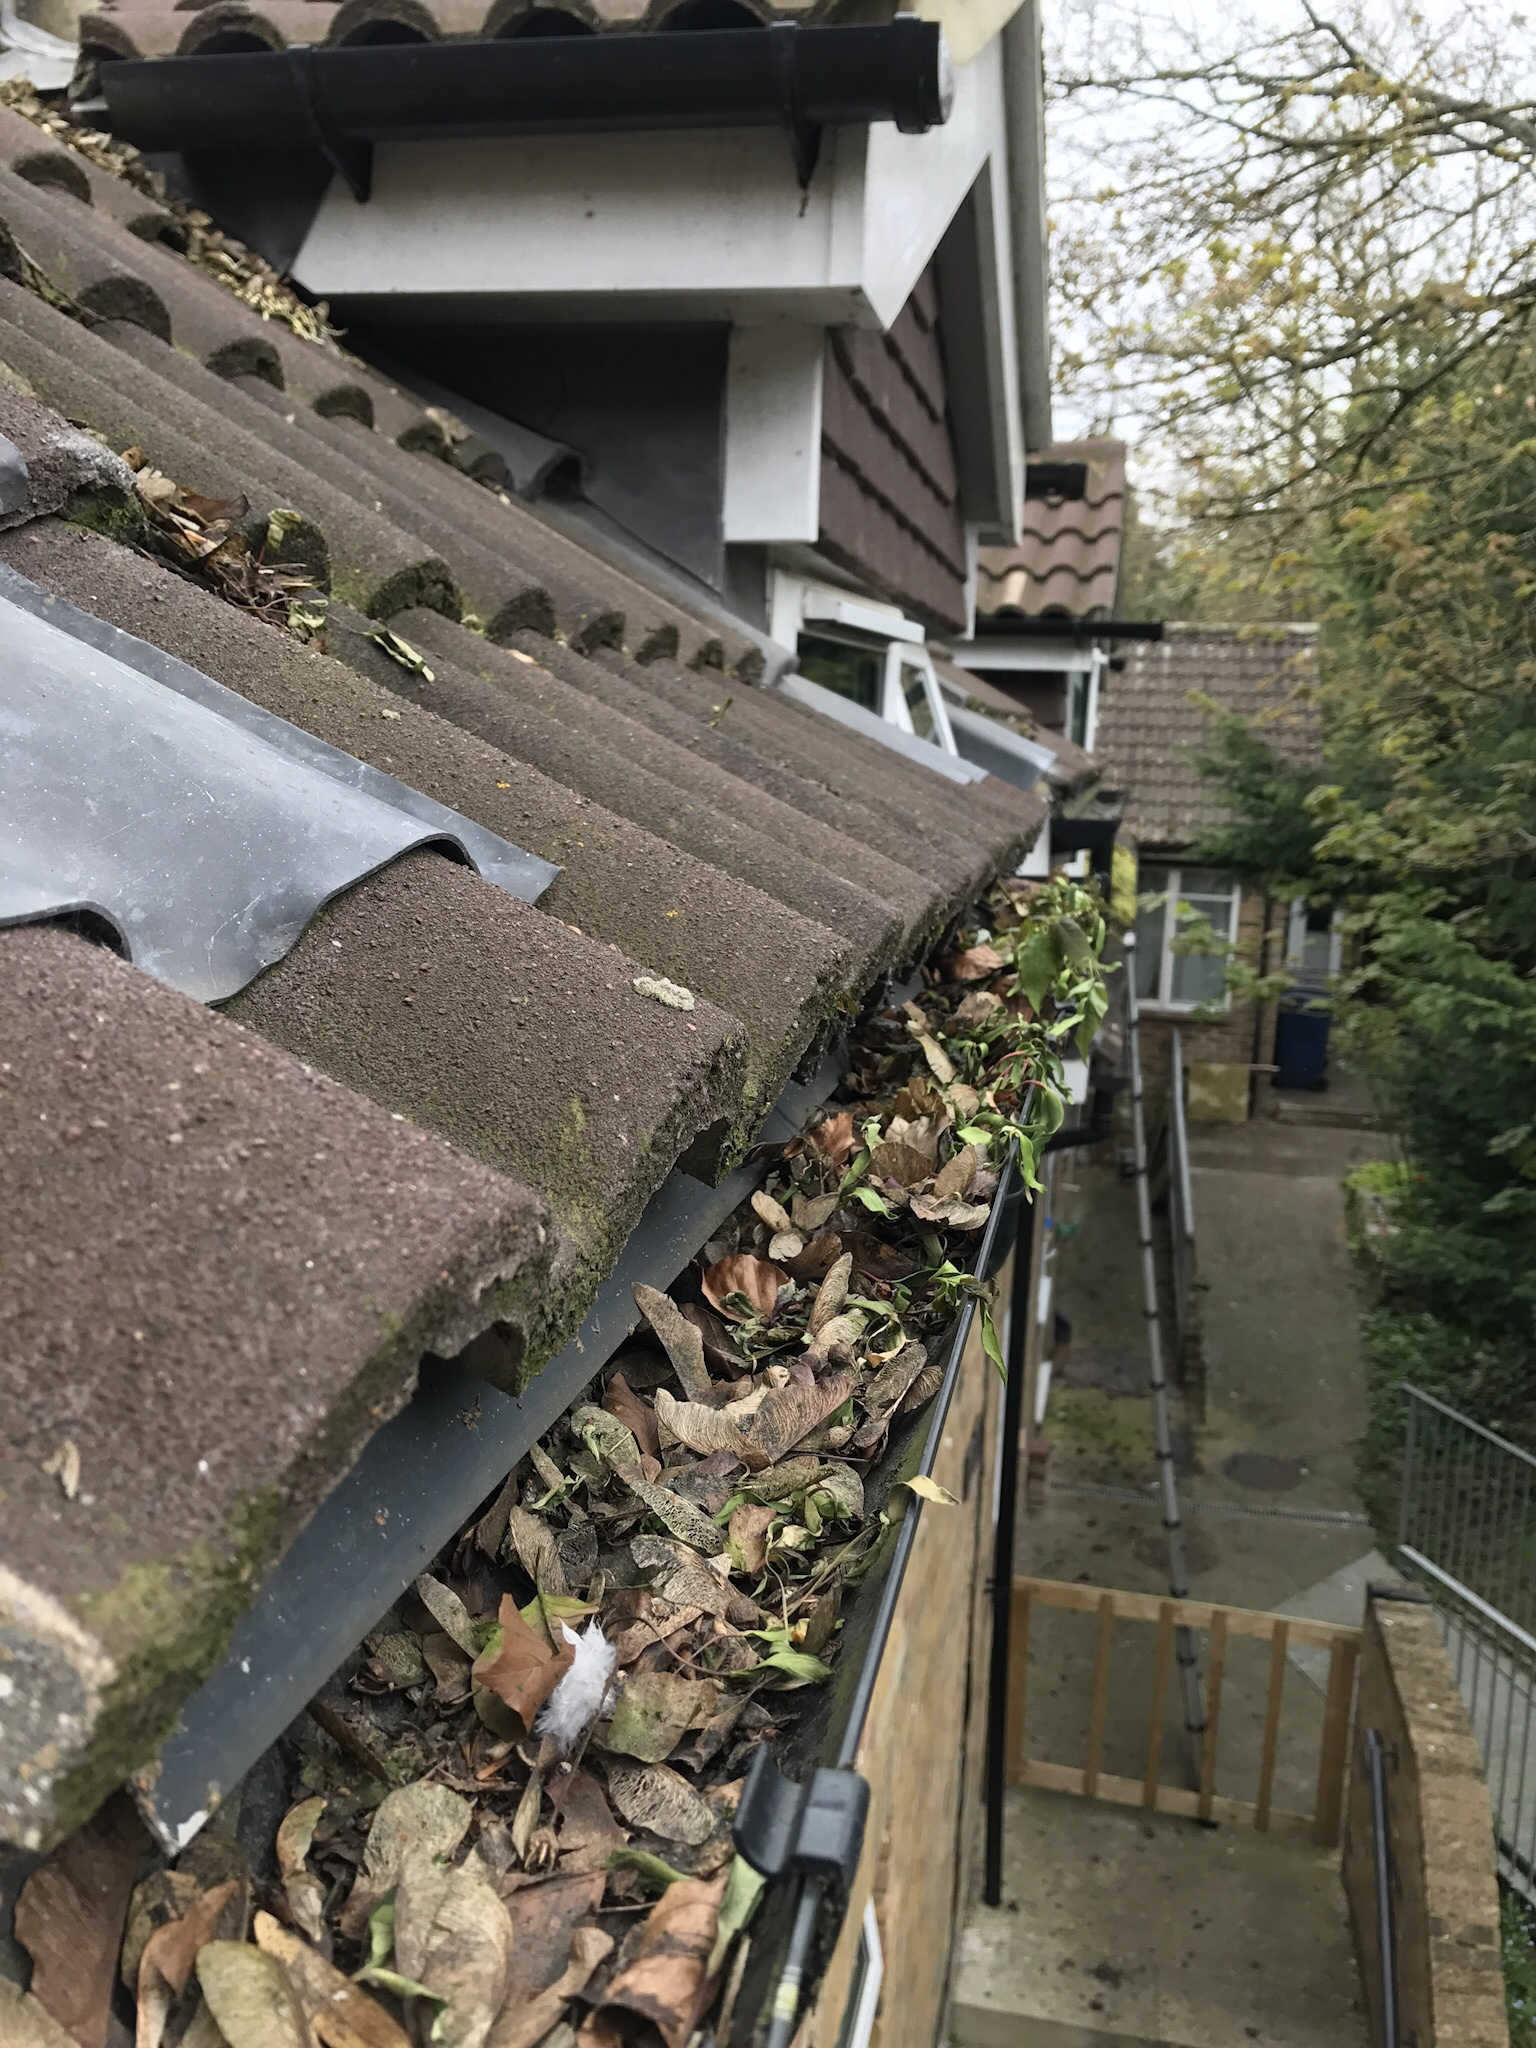 gutter clearing - Using a specialist machine for clearing the dirt from the gutters safely from the ground we are able to remove moss, dirt, plants, tennis balls, kids toys and much more from your gutters.